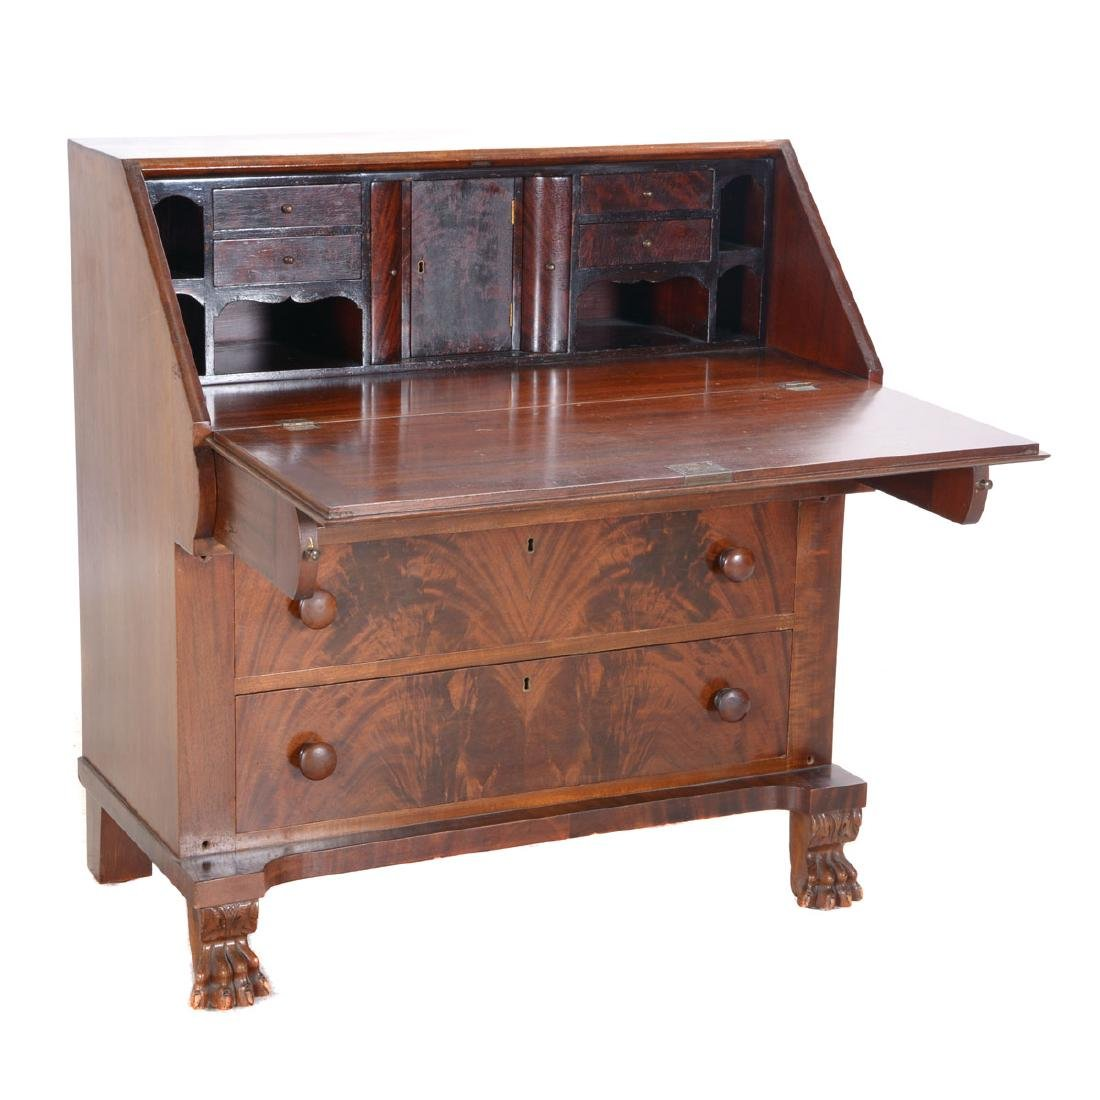 Chippendale Mahogany Slant Front Desk with Claw Feet